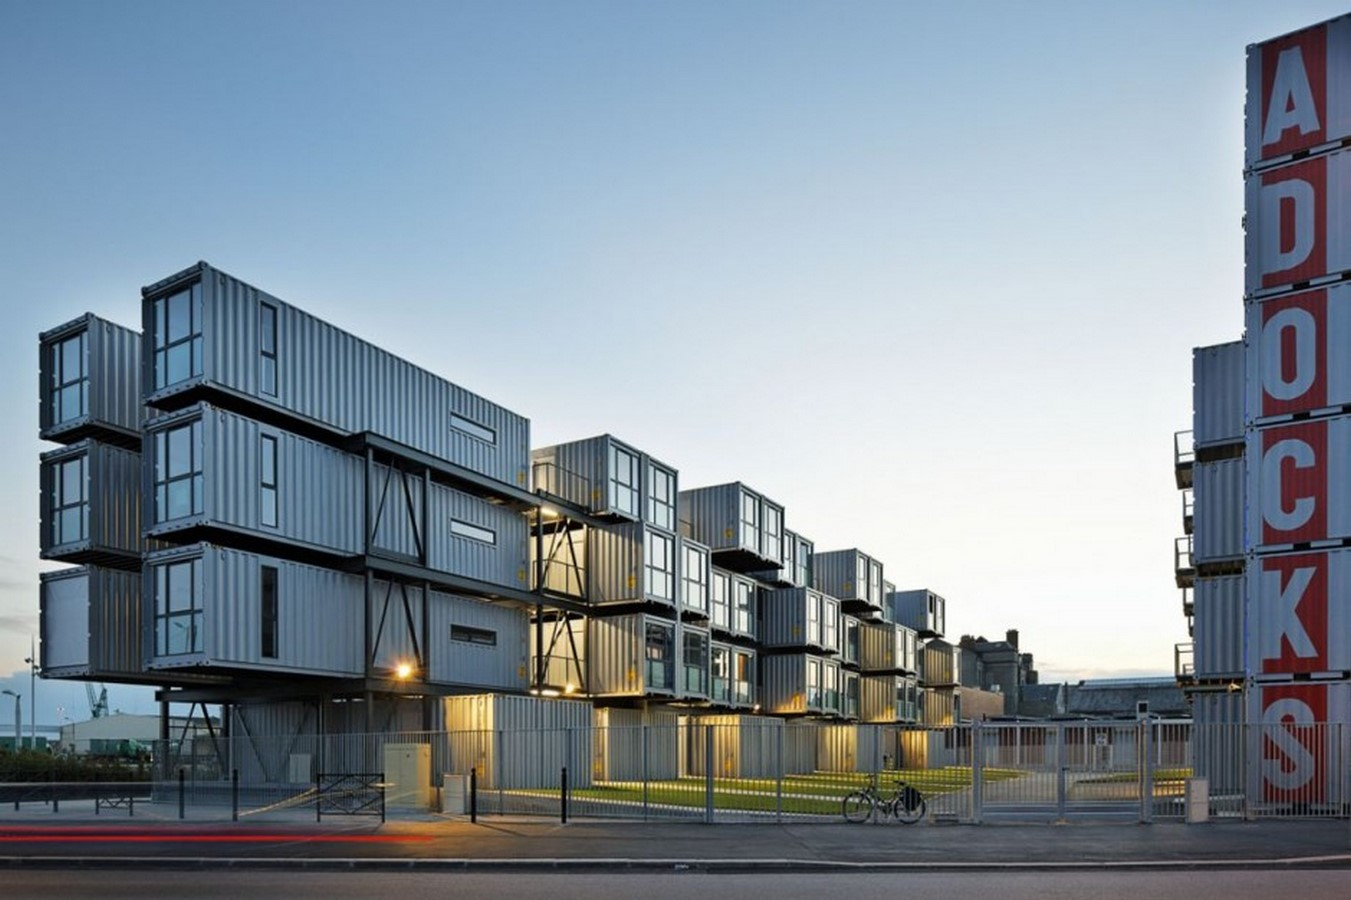 Cargotecture: The Architecture of Shipping containers - Sheet2